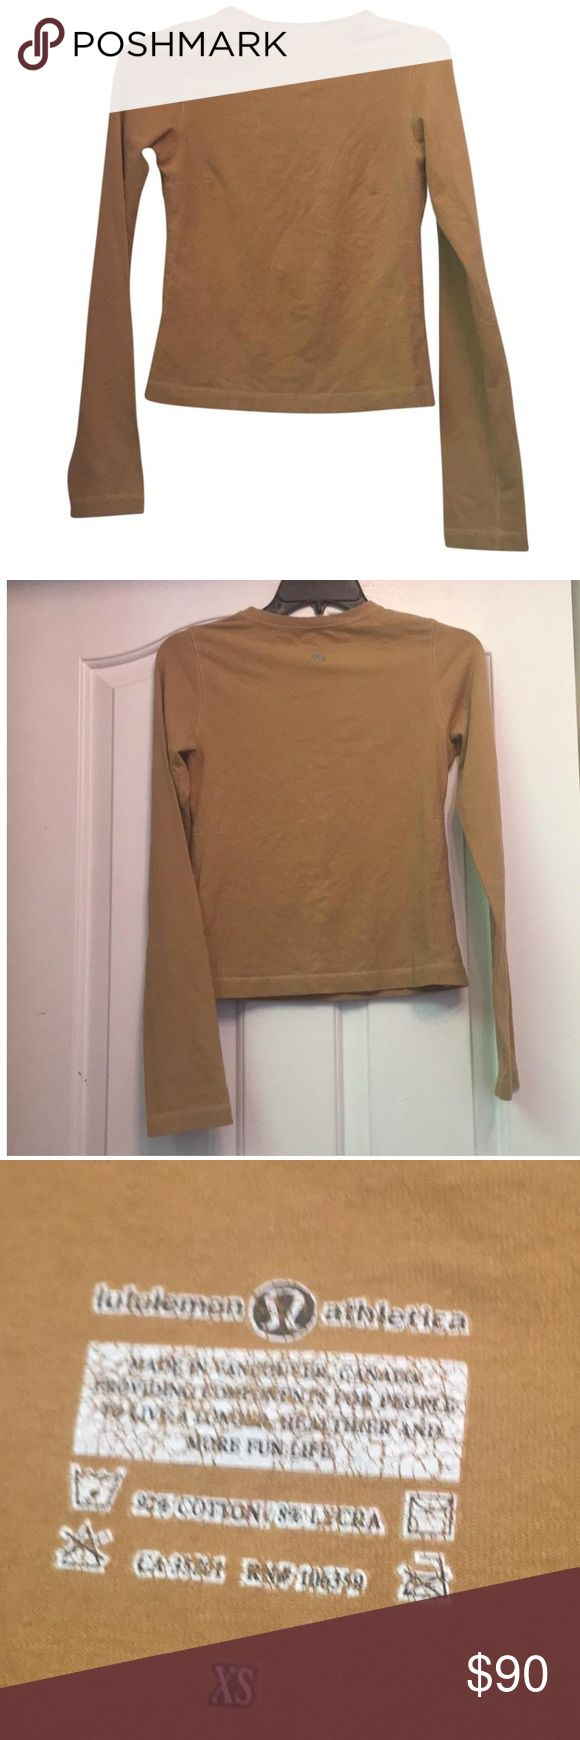 Lululemon gold long sleeve top size XS Thank you for taking the time out of your busy schedule to look at my item.  Have a great day!  Thanks!!😎 lululemon athletica Tops Tees - Long Sleeve